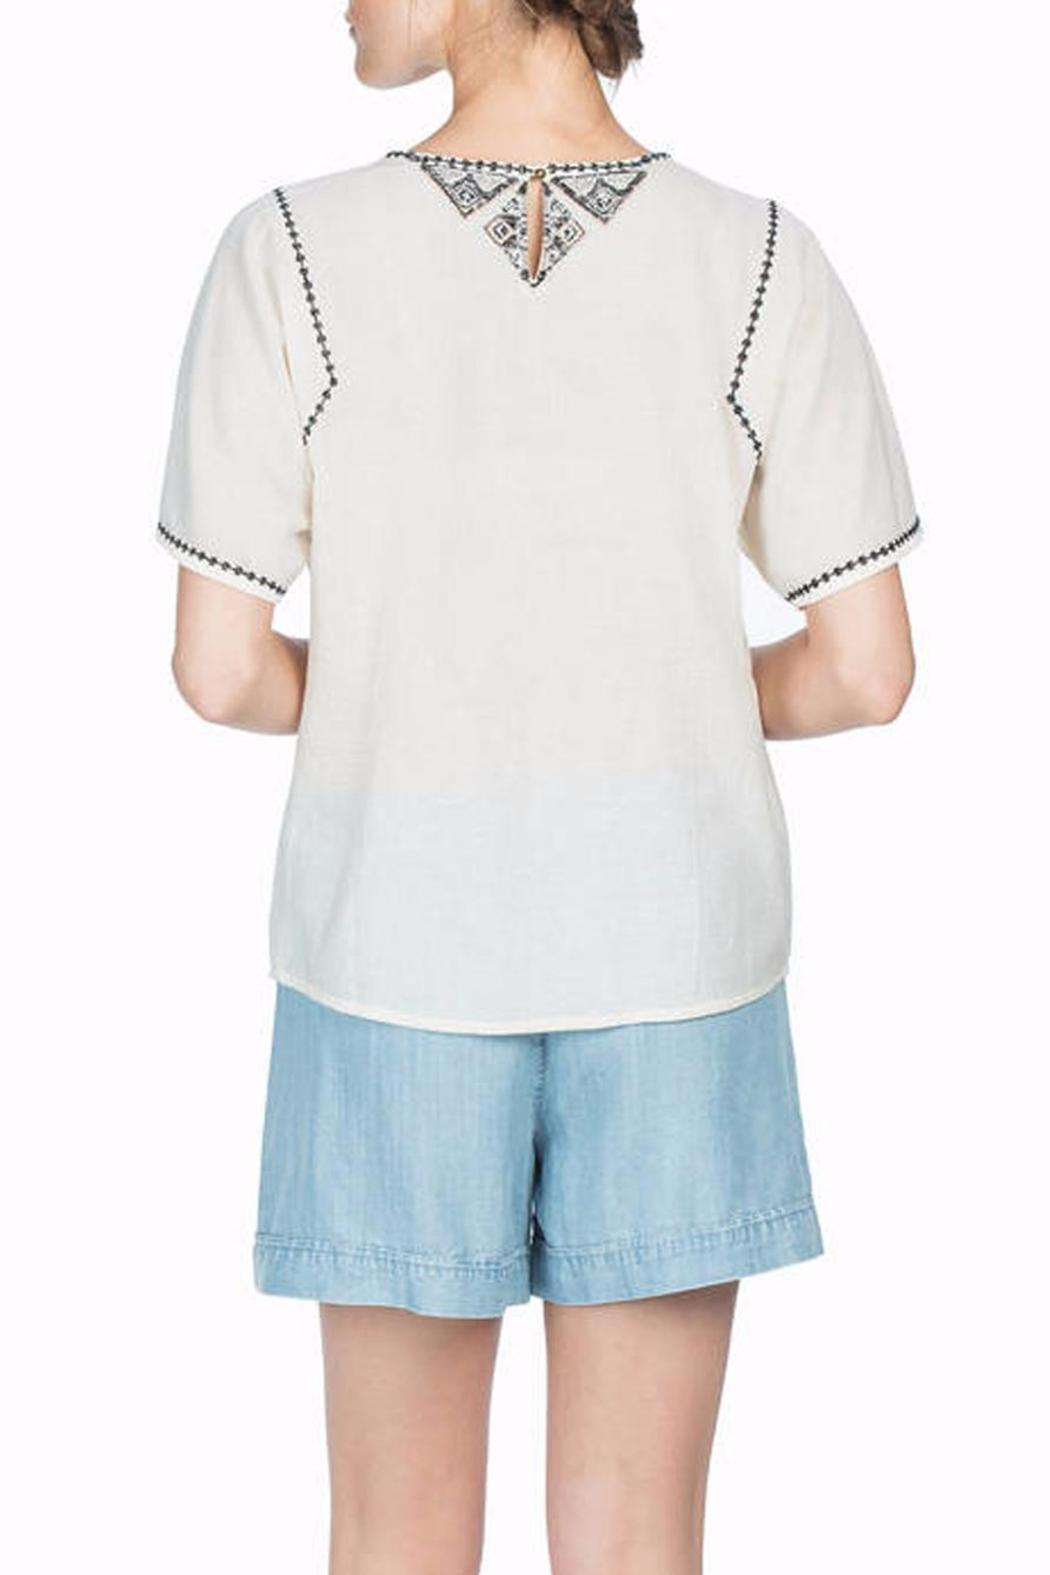 Lilla P Woven Embroidered Top - Front Full Image